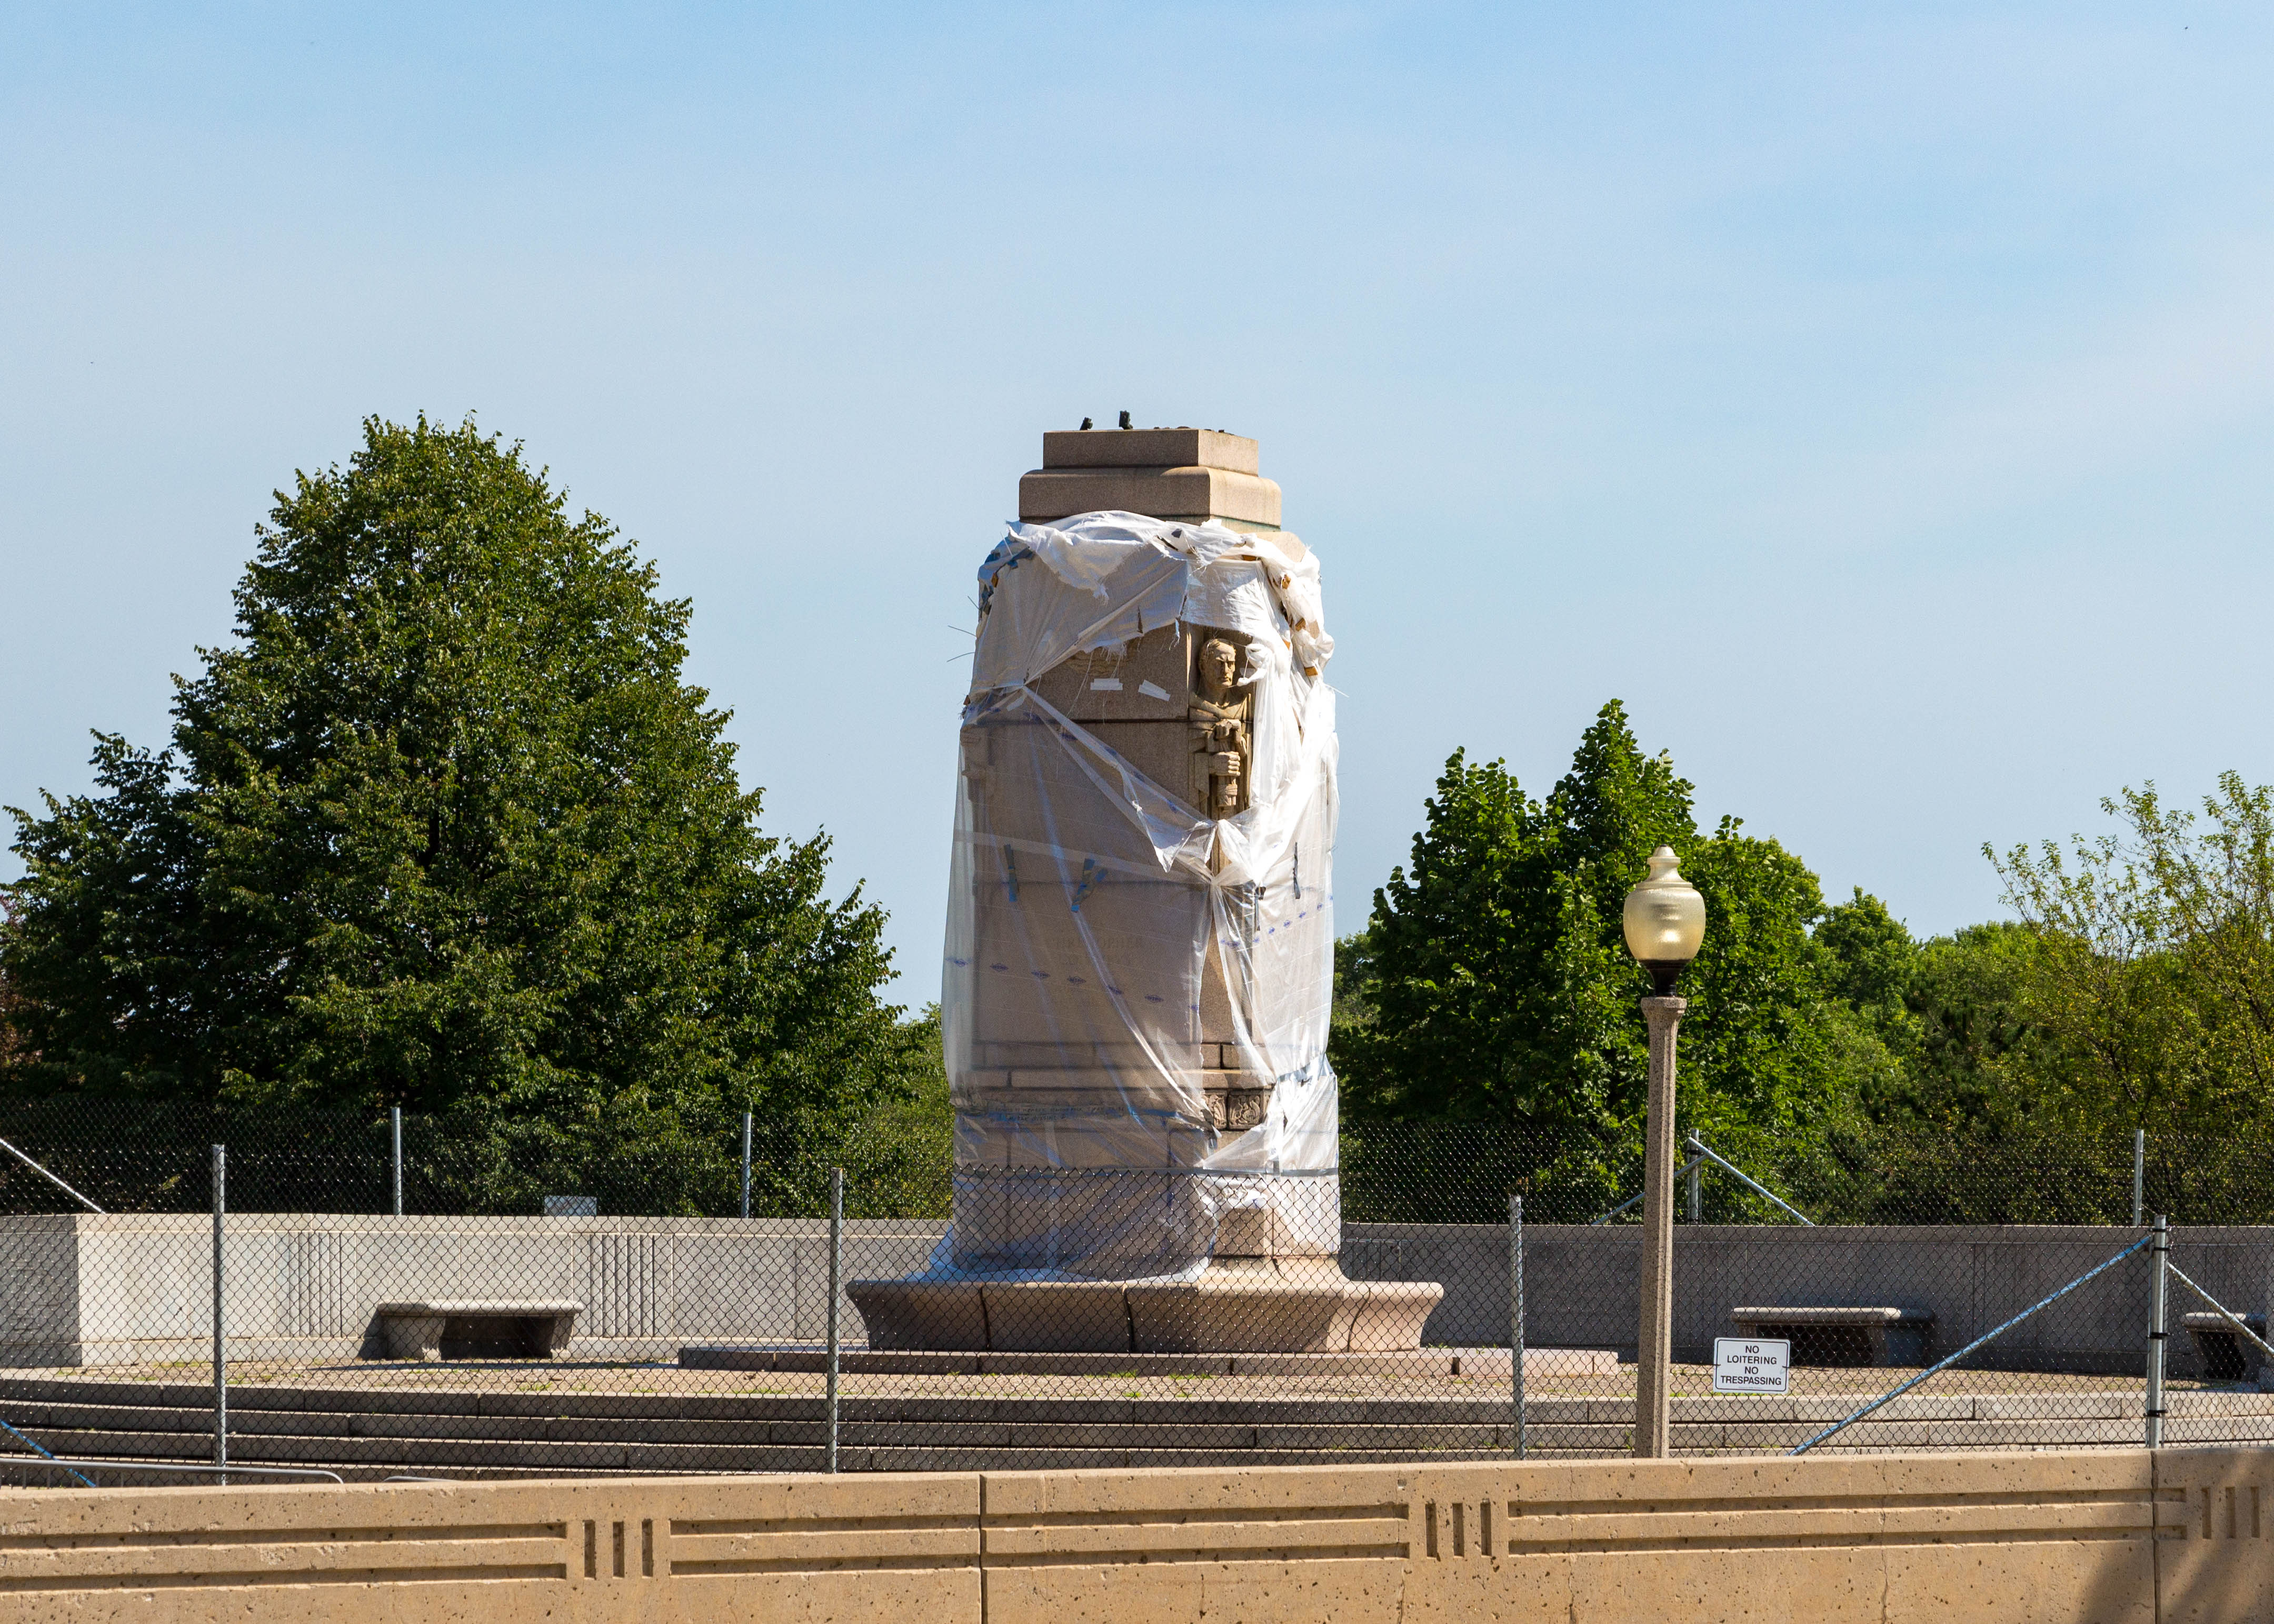 Columbus_Statue_Removal_Grant_Park_Chicago_July_25_2020-2069.jpg